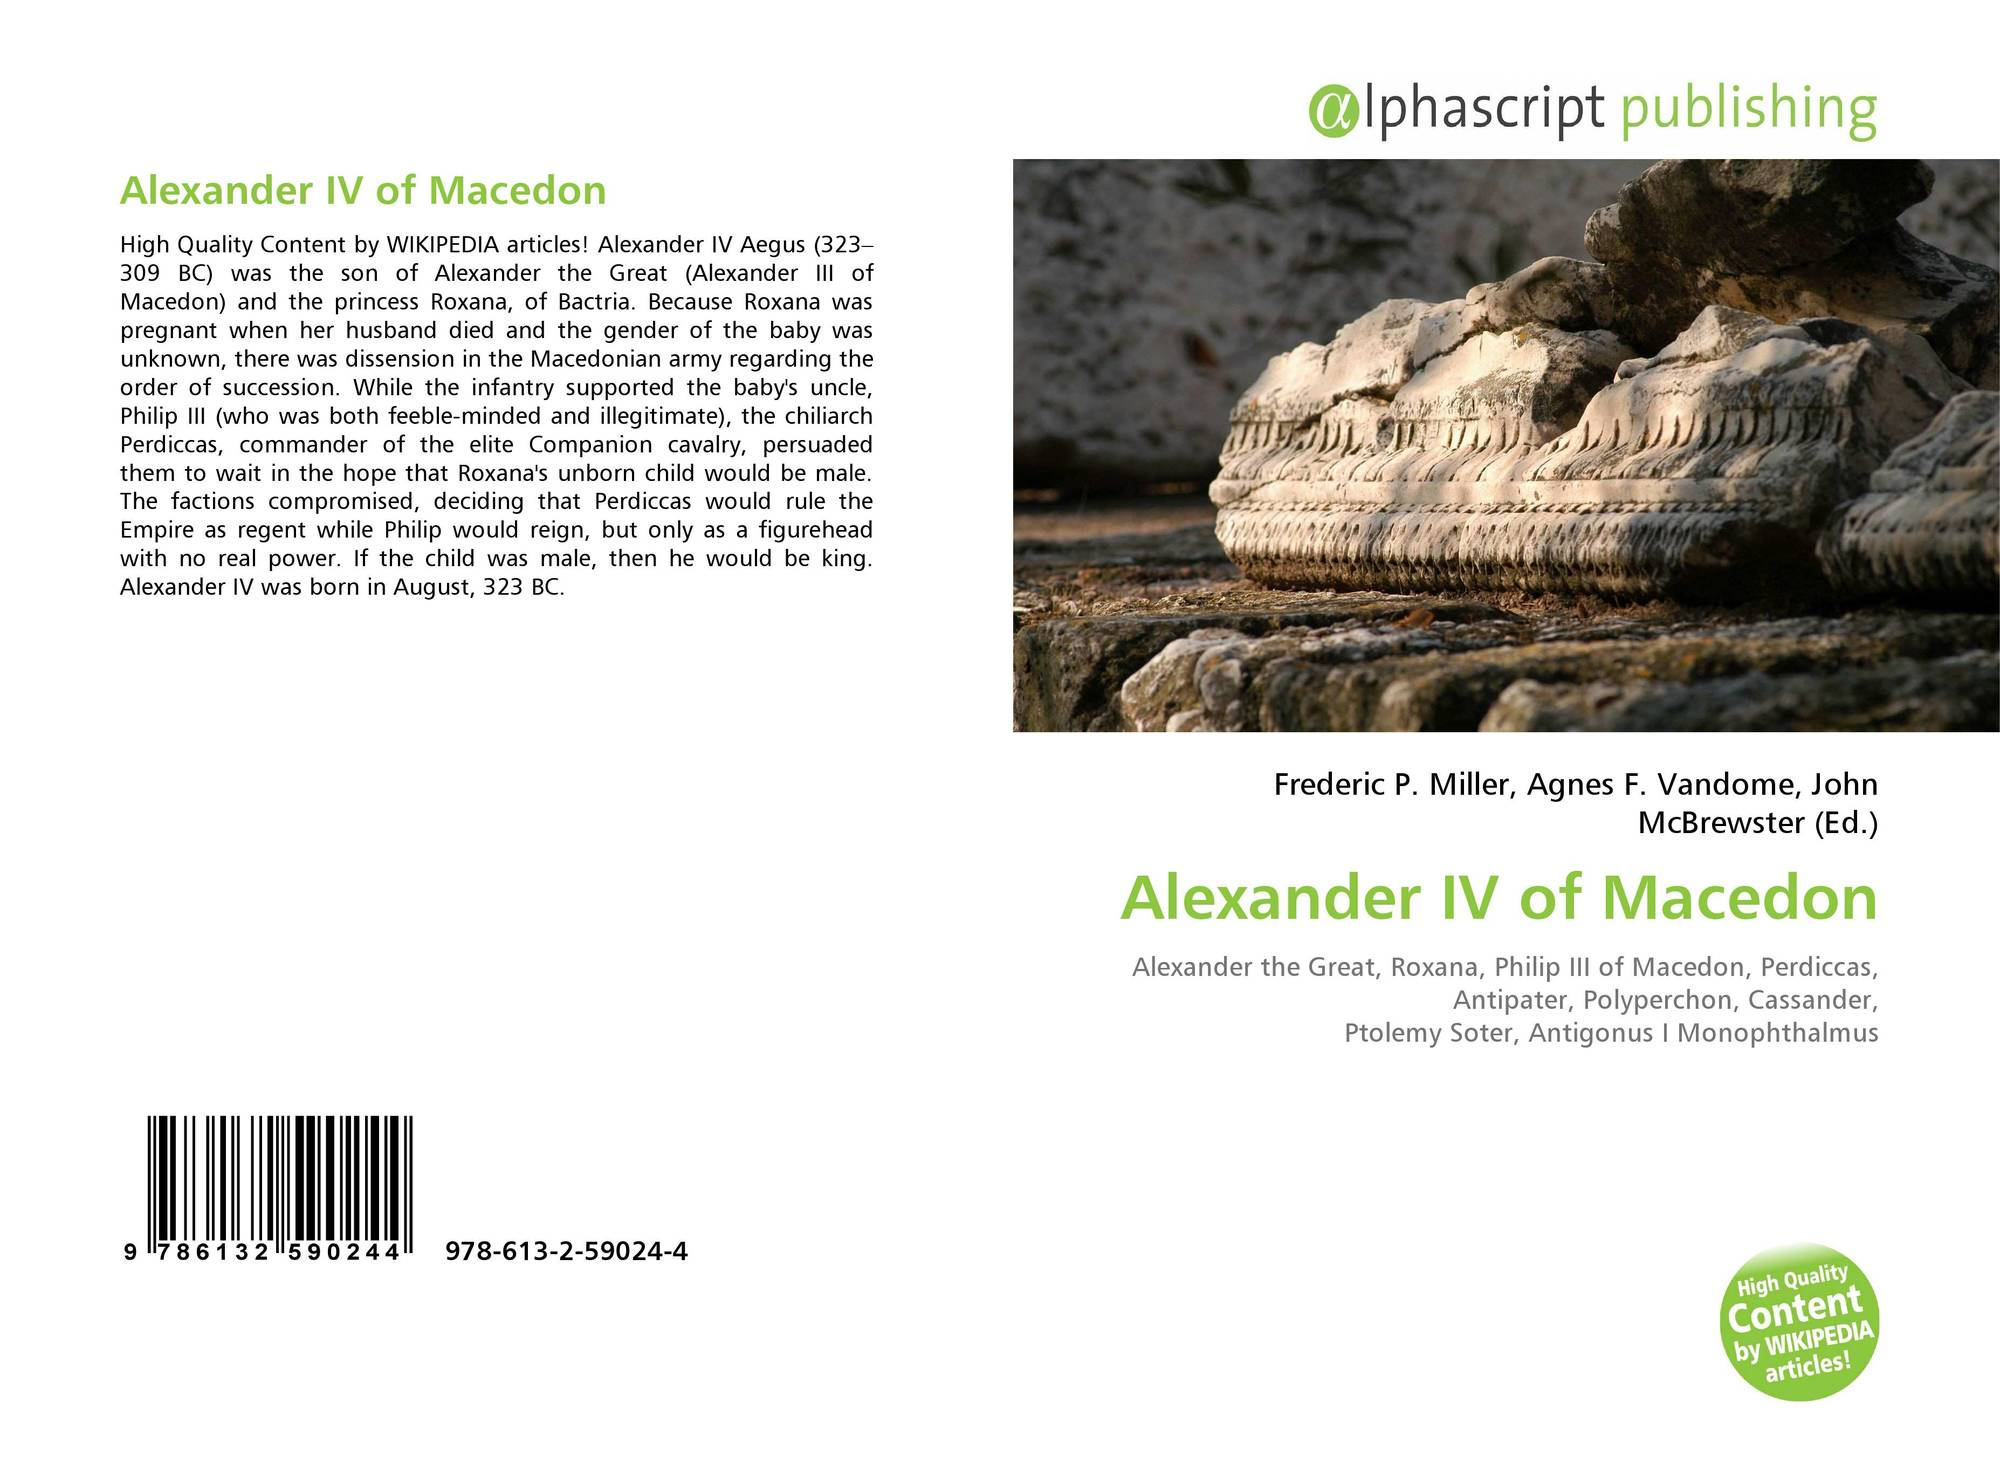 an analysis of the alexanders death in lysimachus Featured is this what alexander the great looked like after cassander's death in 297 lysimachus began minting tetradrachms prosopography of alexanders.